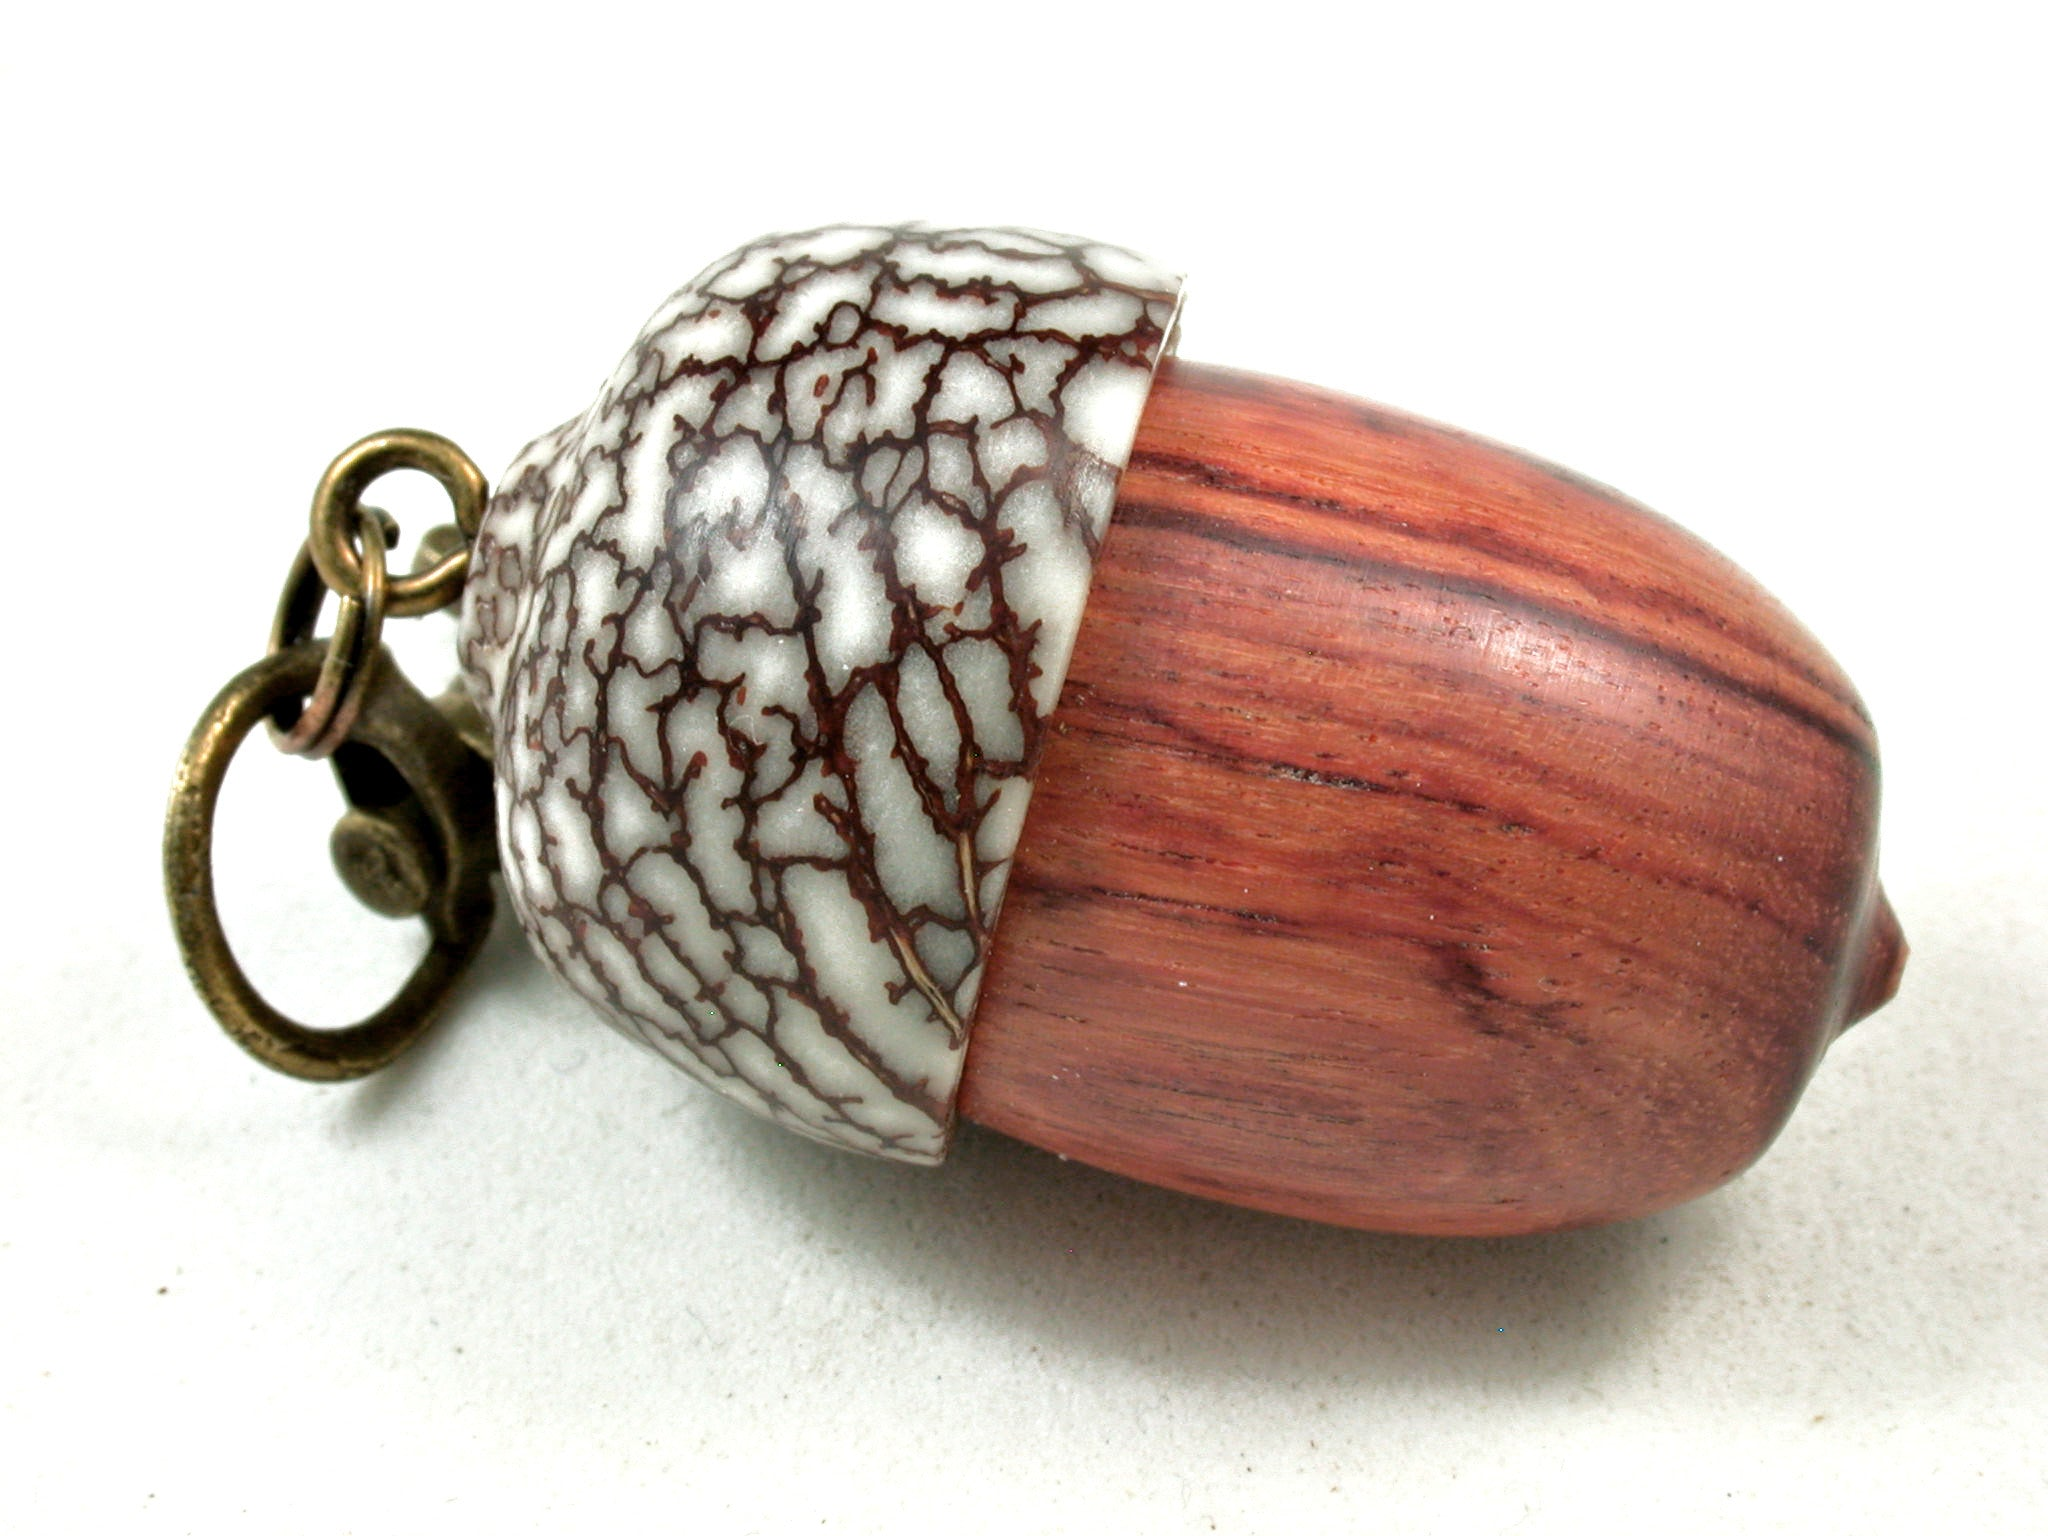 LV-3576 Tulipwood & Betelnut Acorn Pendant Box, Charm, Pill Holder-SCREW CAP